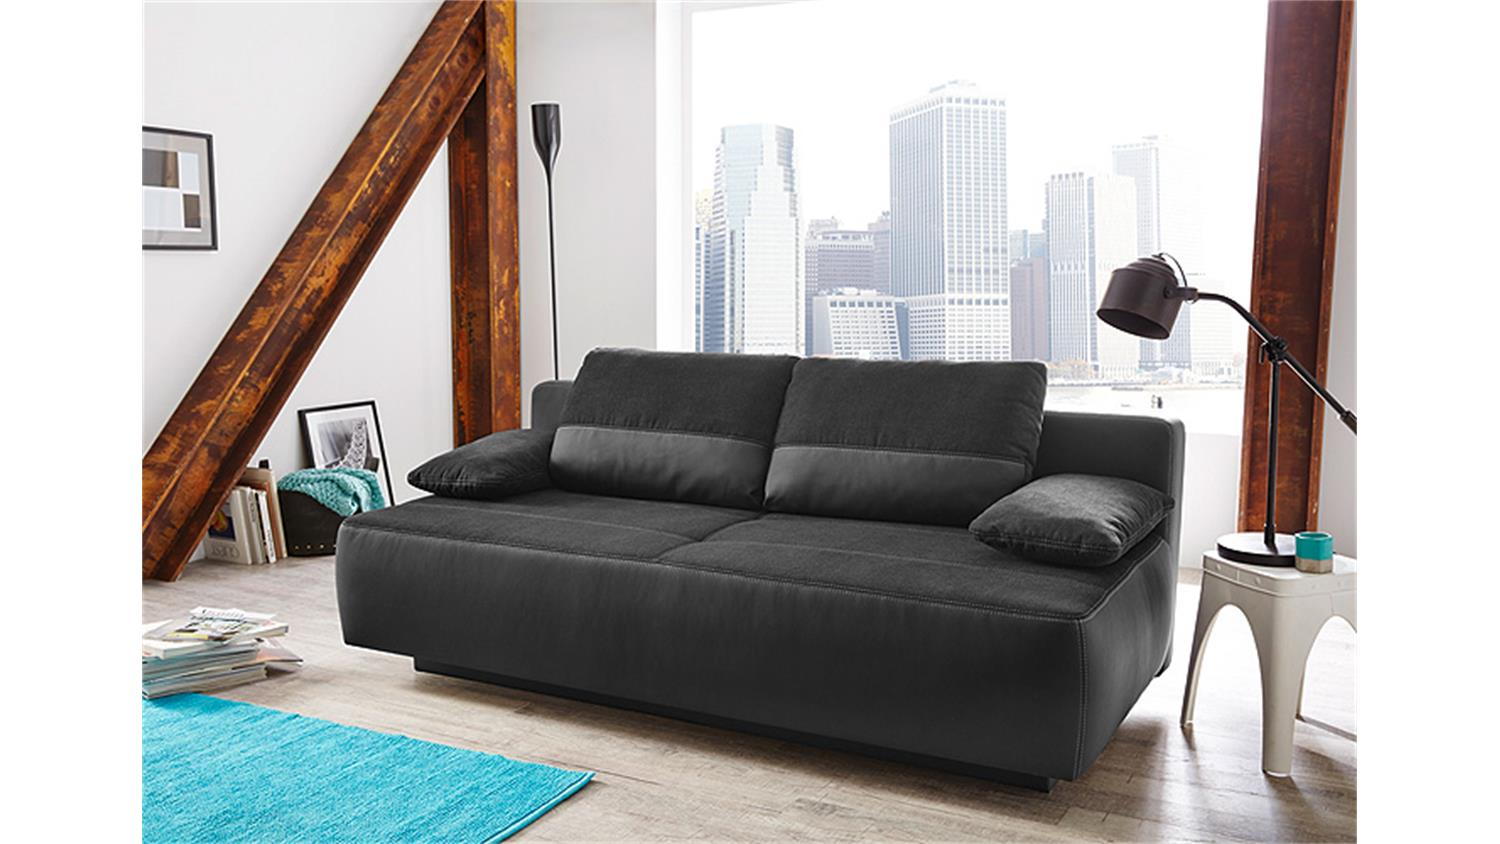 funktionssofa venedig schlafsofa sofa in schwarz bettkasten. Black Bedroom Furniture Sets. Home Design Ideas